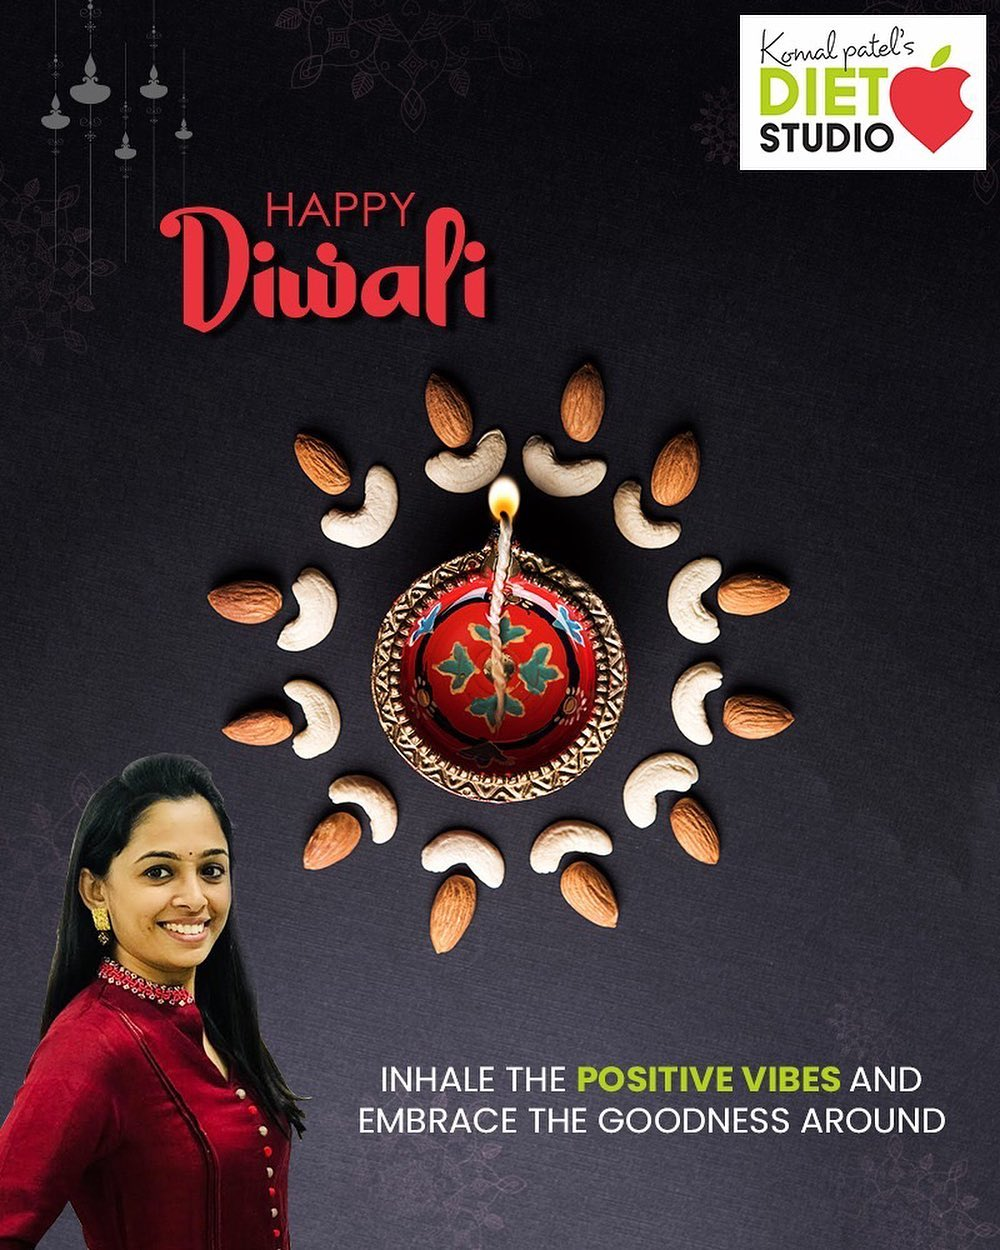 Inhale the positive vibes and embrace the goodness around  #HappyDiwali #IndianFestivals #Celebration #Diwali #Diwali2019 #FestivalOfLight #FestivalOfJoy #komalpatel #diet #goodfood #eathealthy #goodhealth